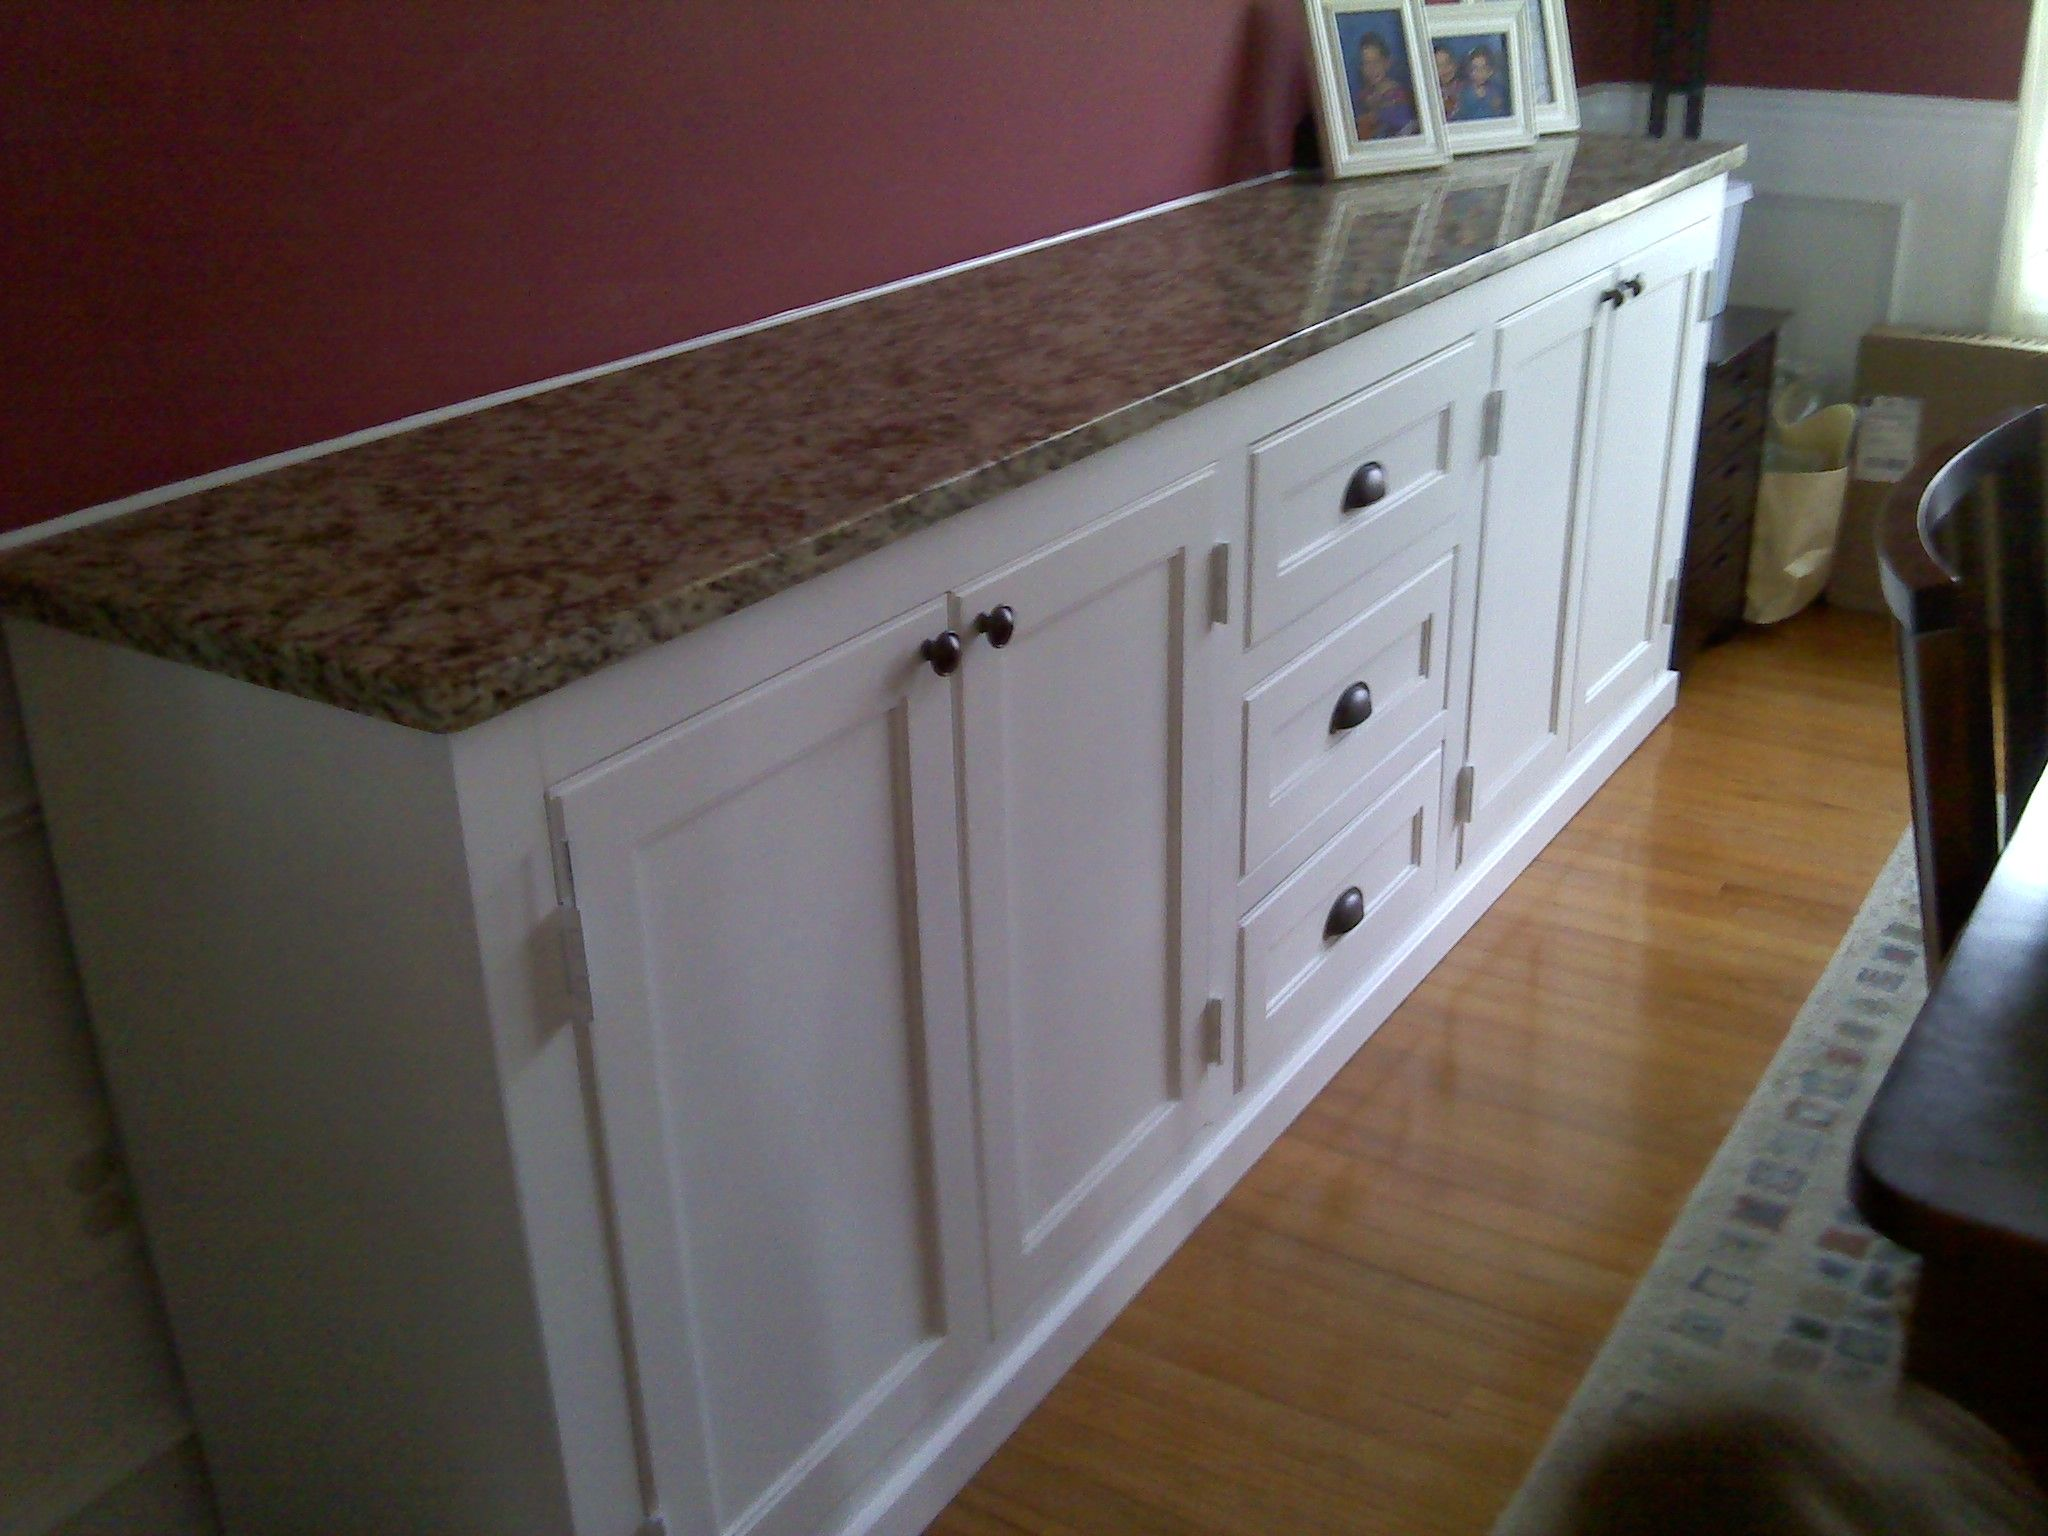 Dining room furniture buffet - Built In Dining Room Buffet Storage Underneath And Matching Countertop To Kitchen